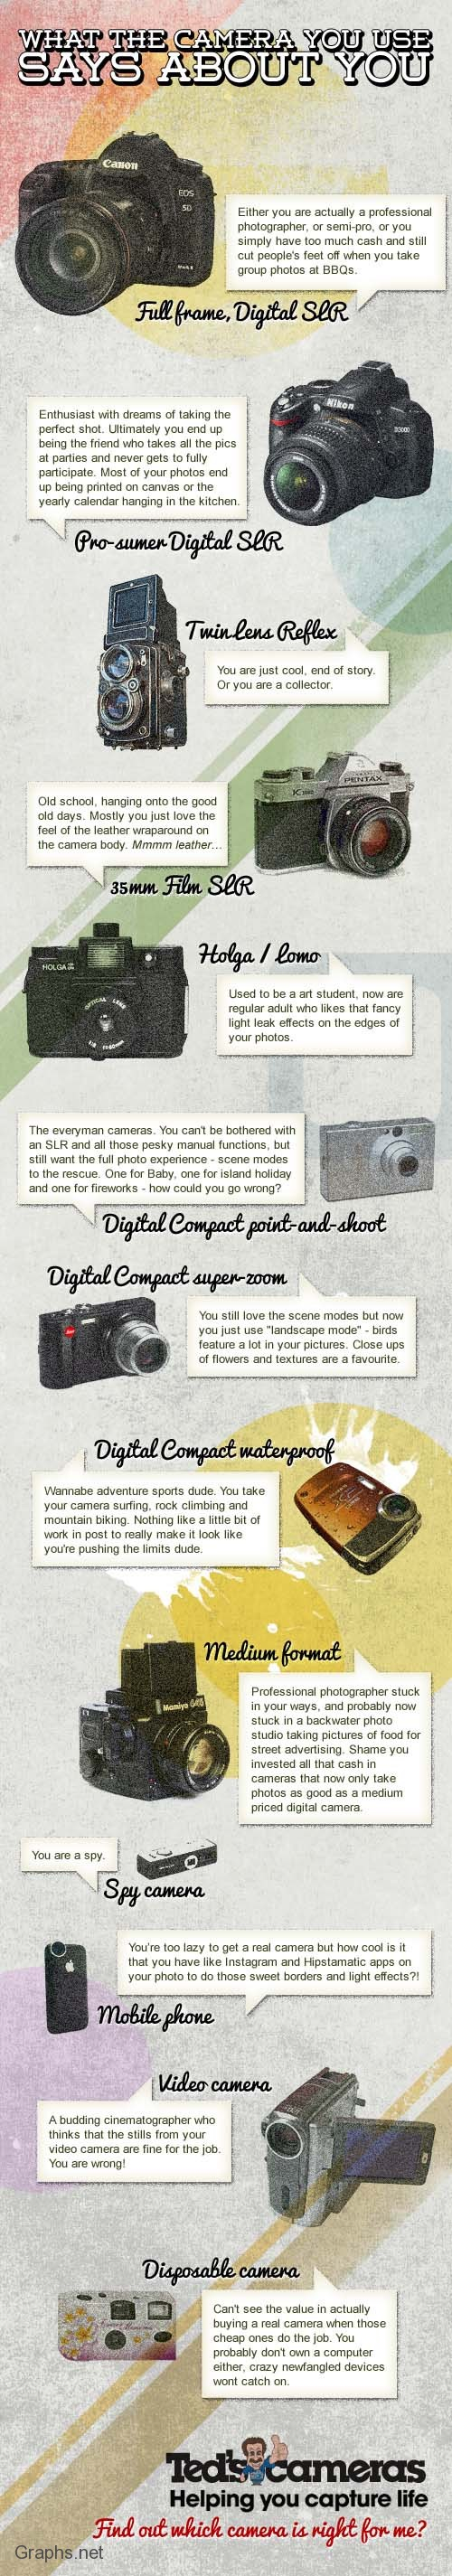 The camera and you